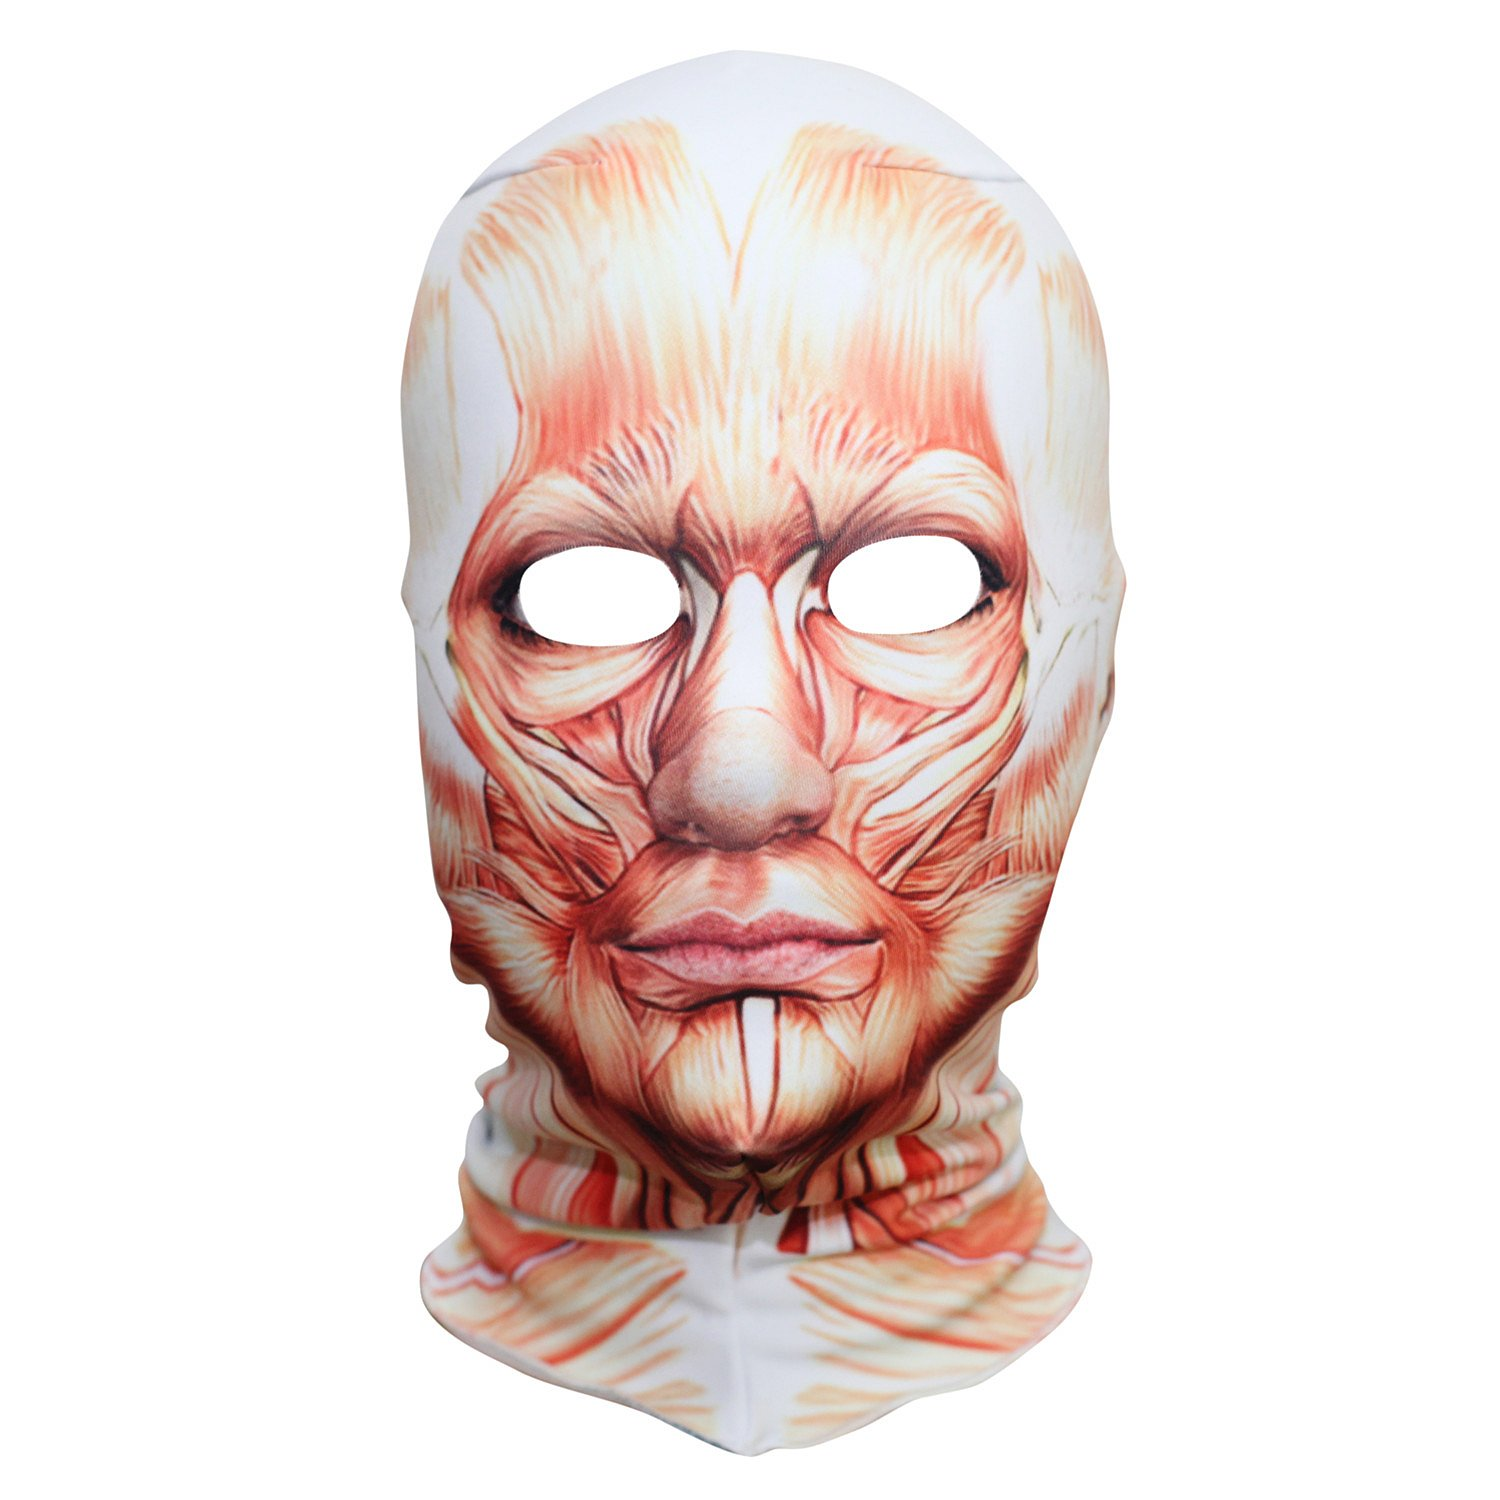 AXBXCX Polyester Fleece Costume Skin Masks Halloween Party Full Cover Hood Mask